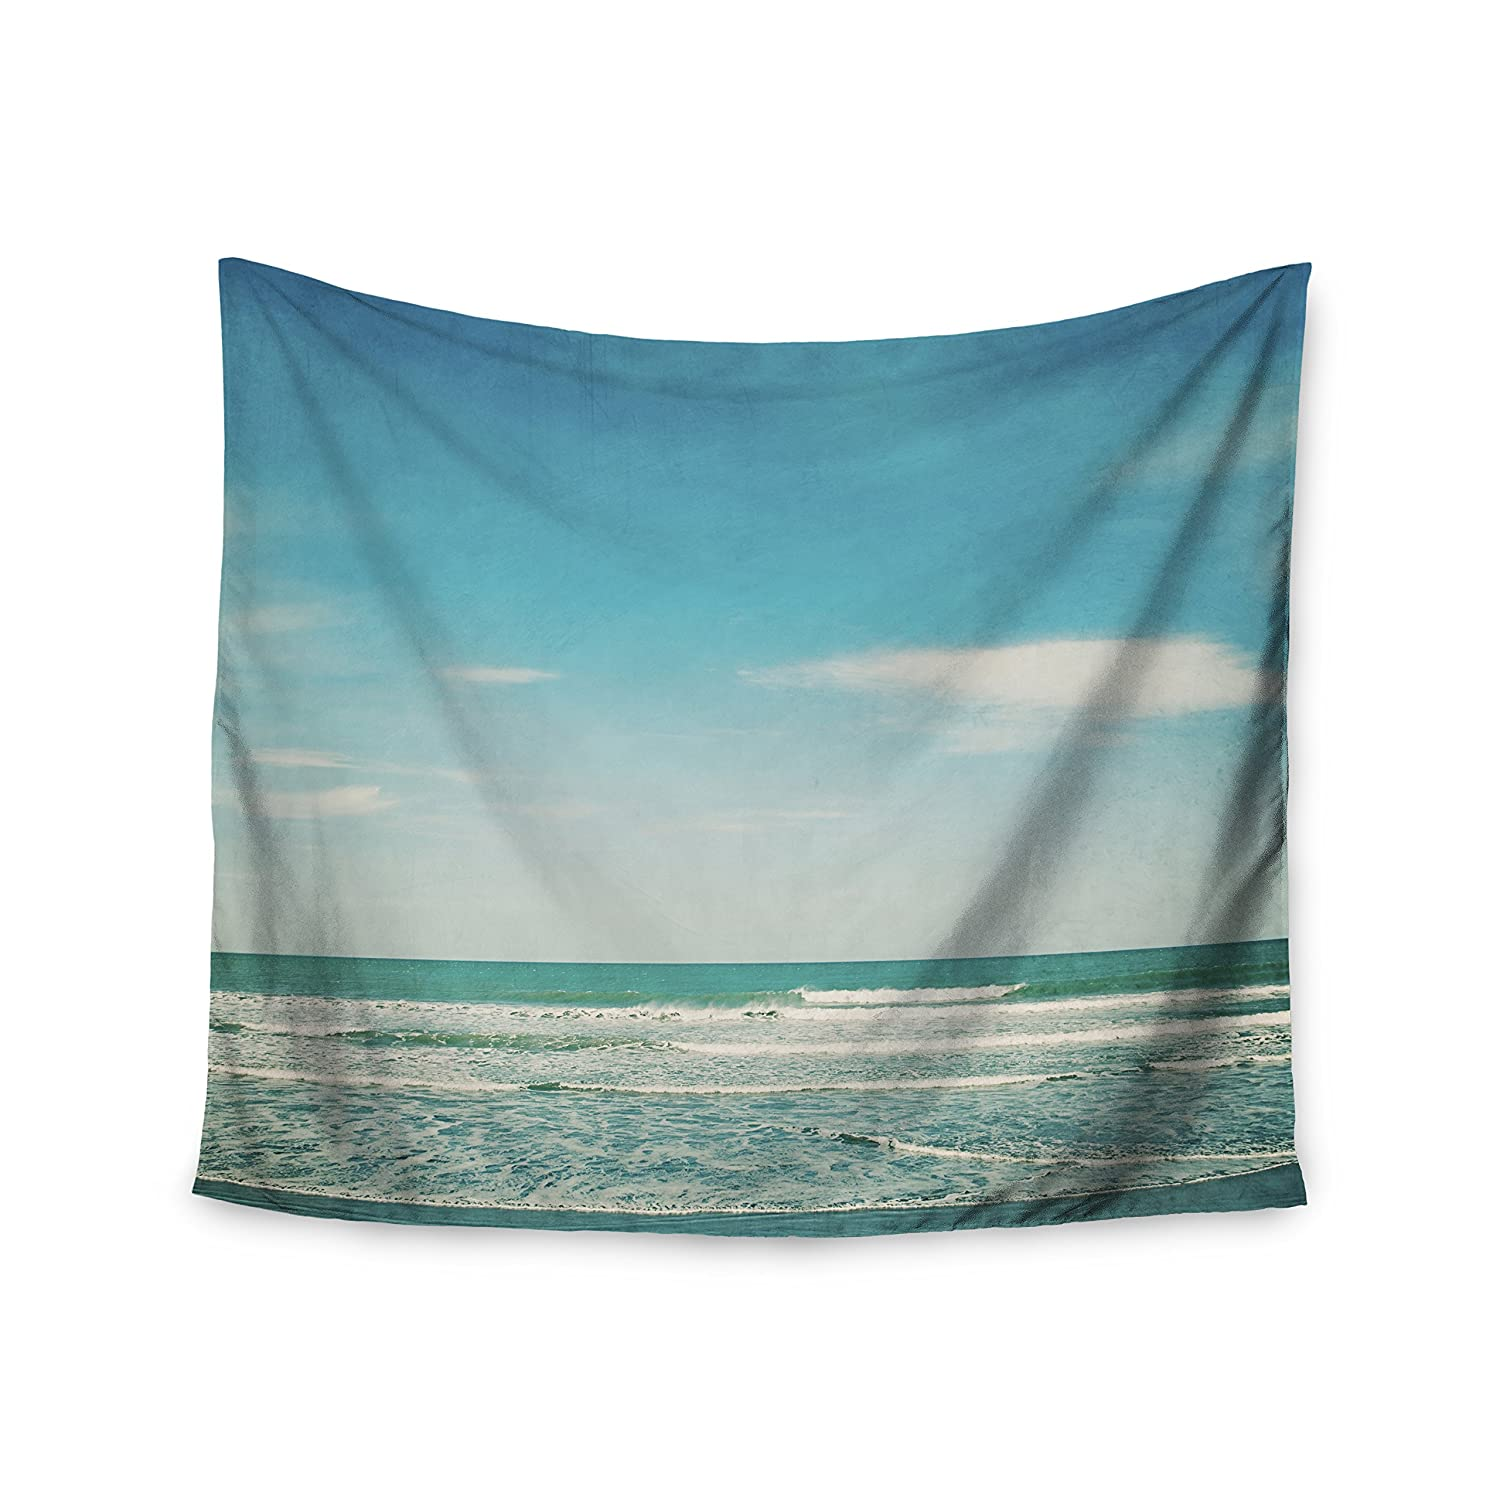 68 X 80 Kess InHouse Susannah Tucker The Teal Ocean Green Blue Wall Tapestry